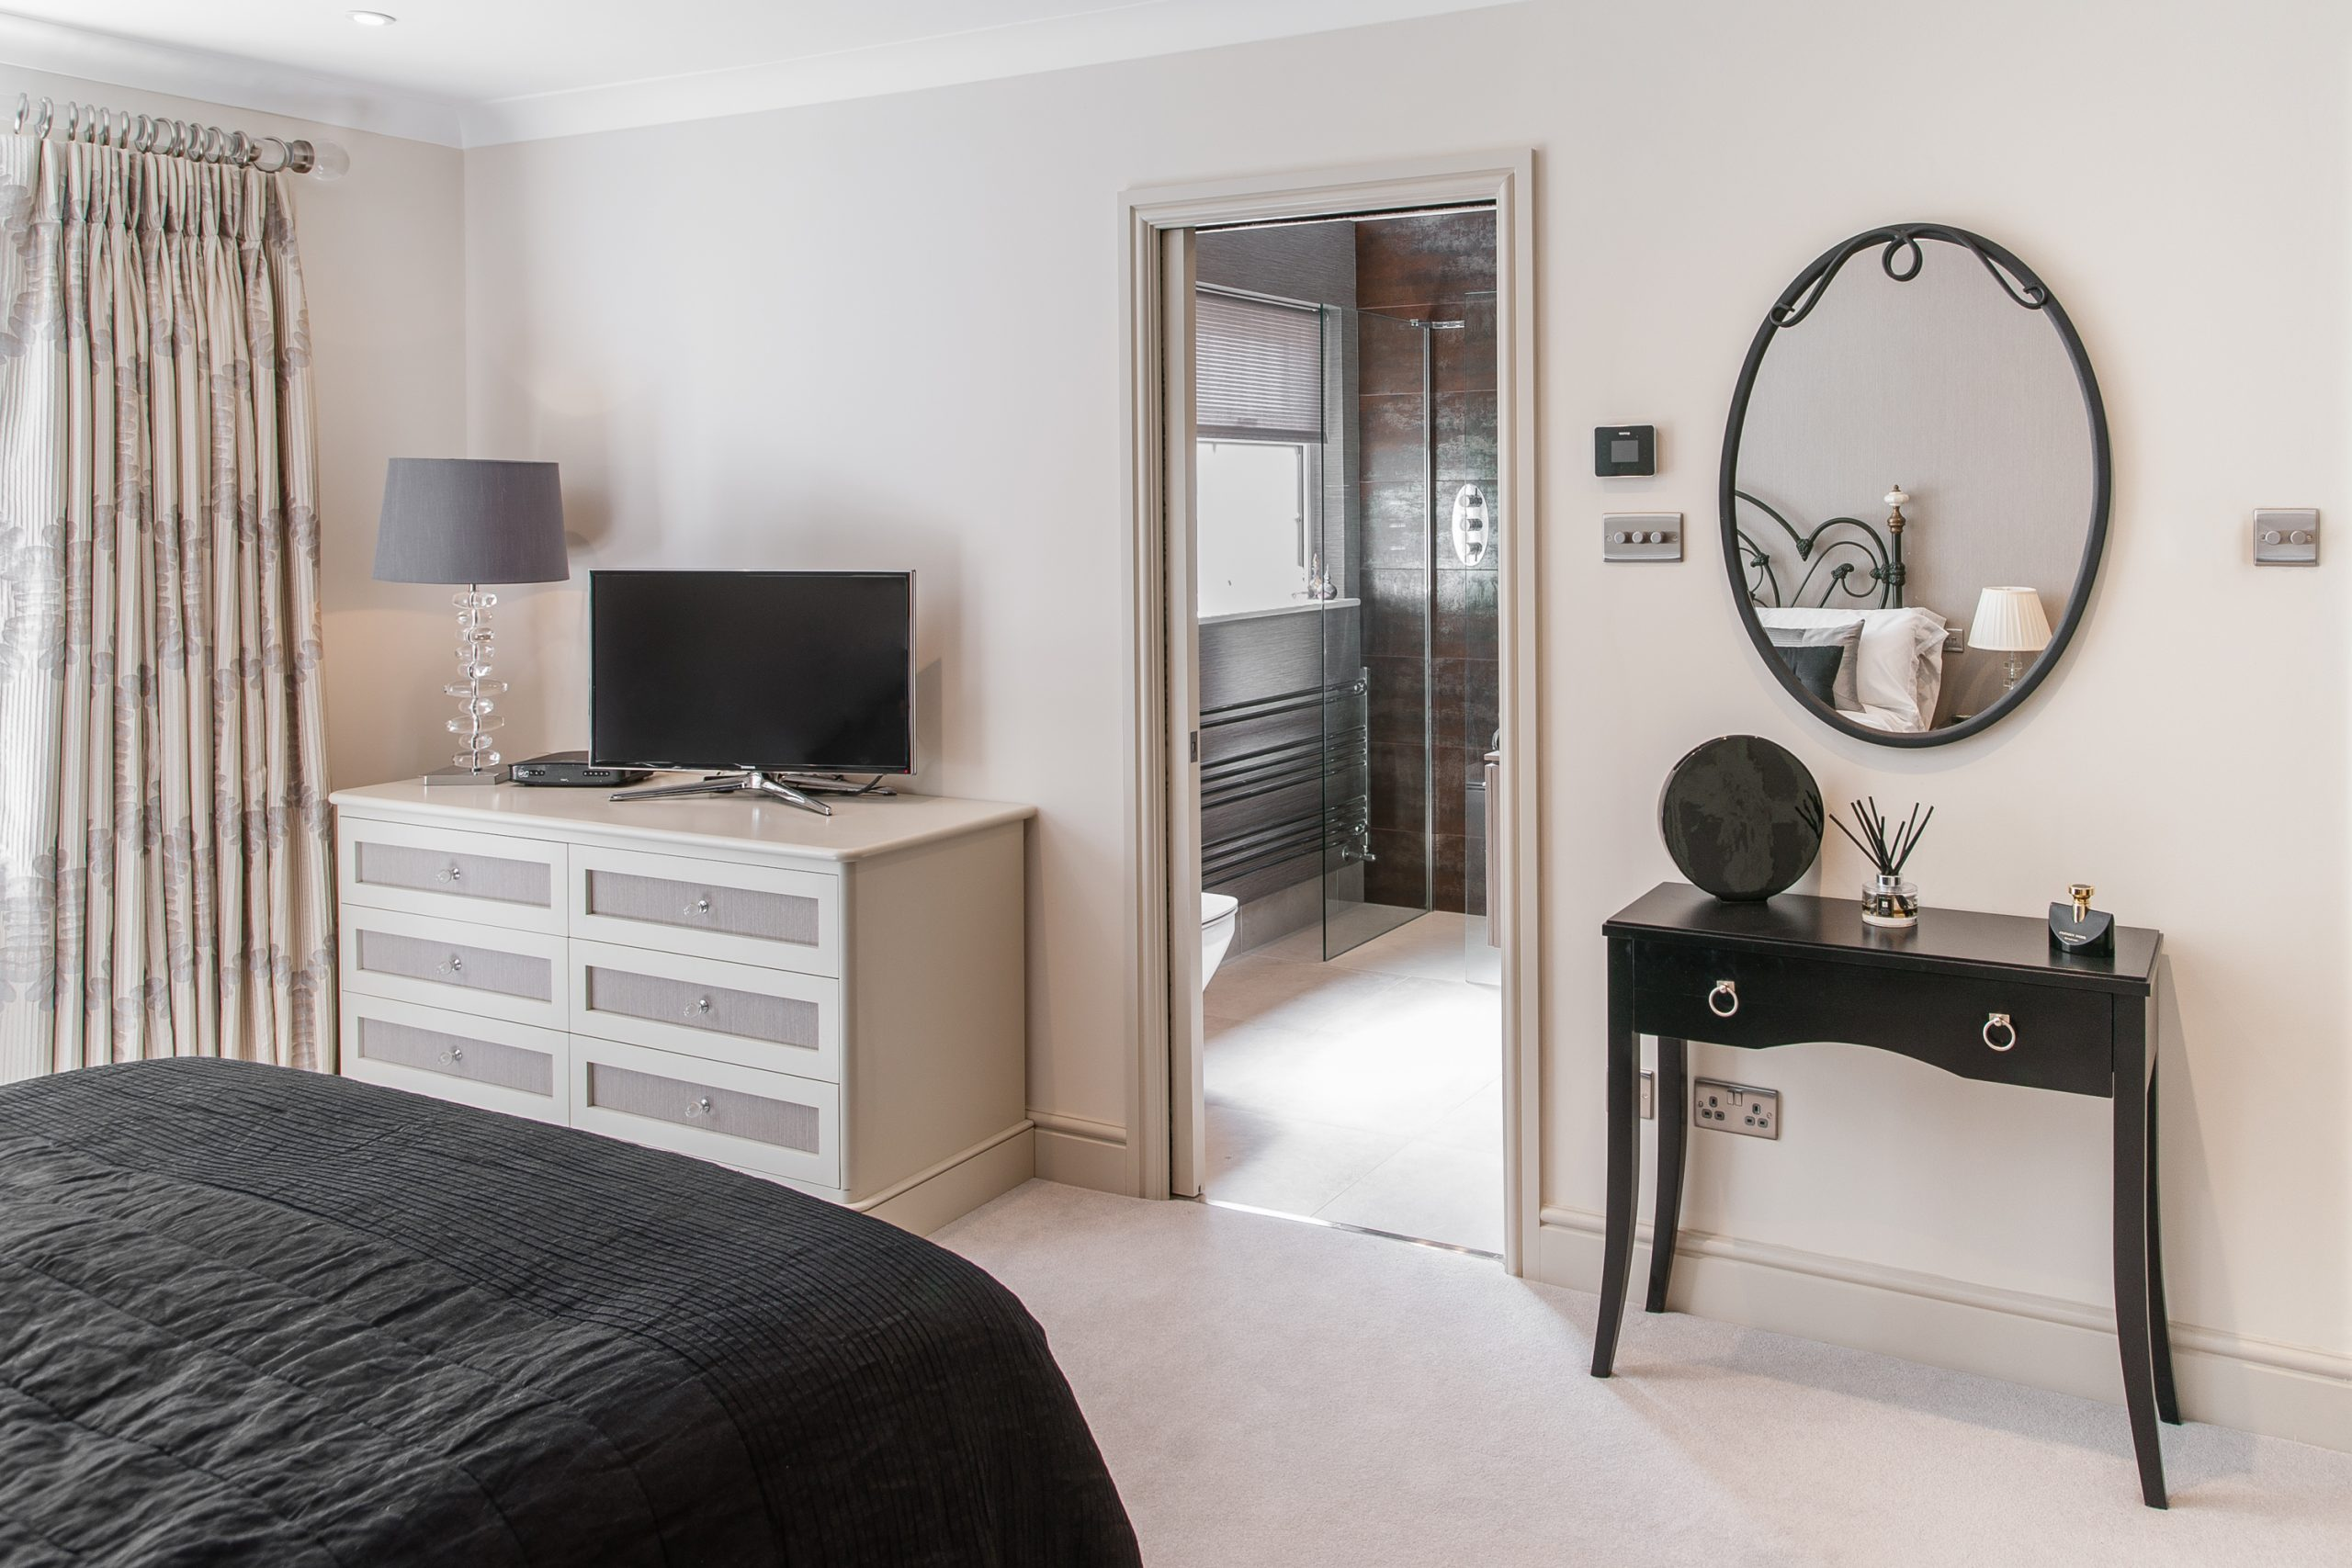 Bedroom and En Suite Redesign with a Luxury Hotel Feel